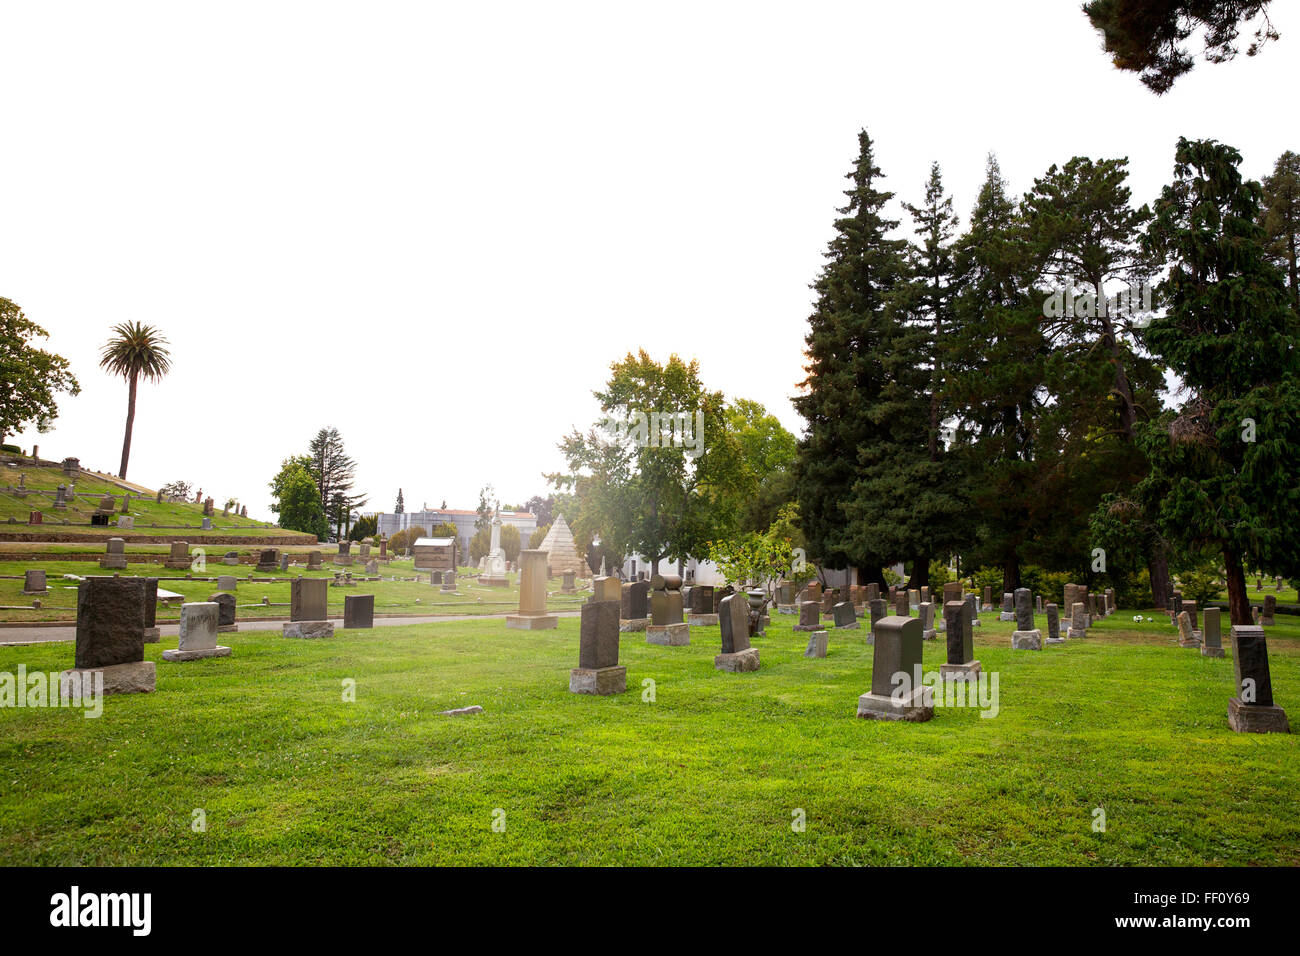 View of Mountain View Cemetery in the Piedmont Neighborhood of Oakland California. - Stock Image